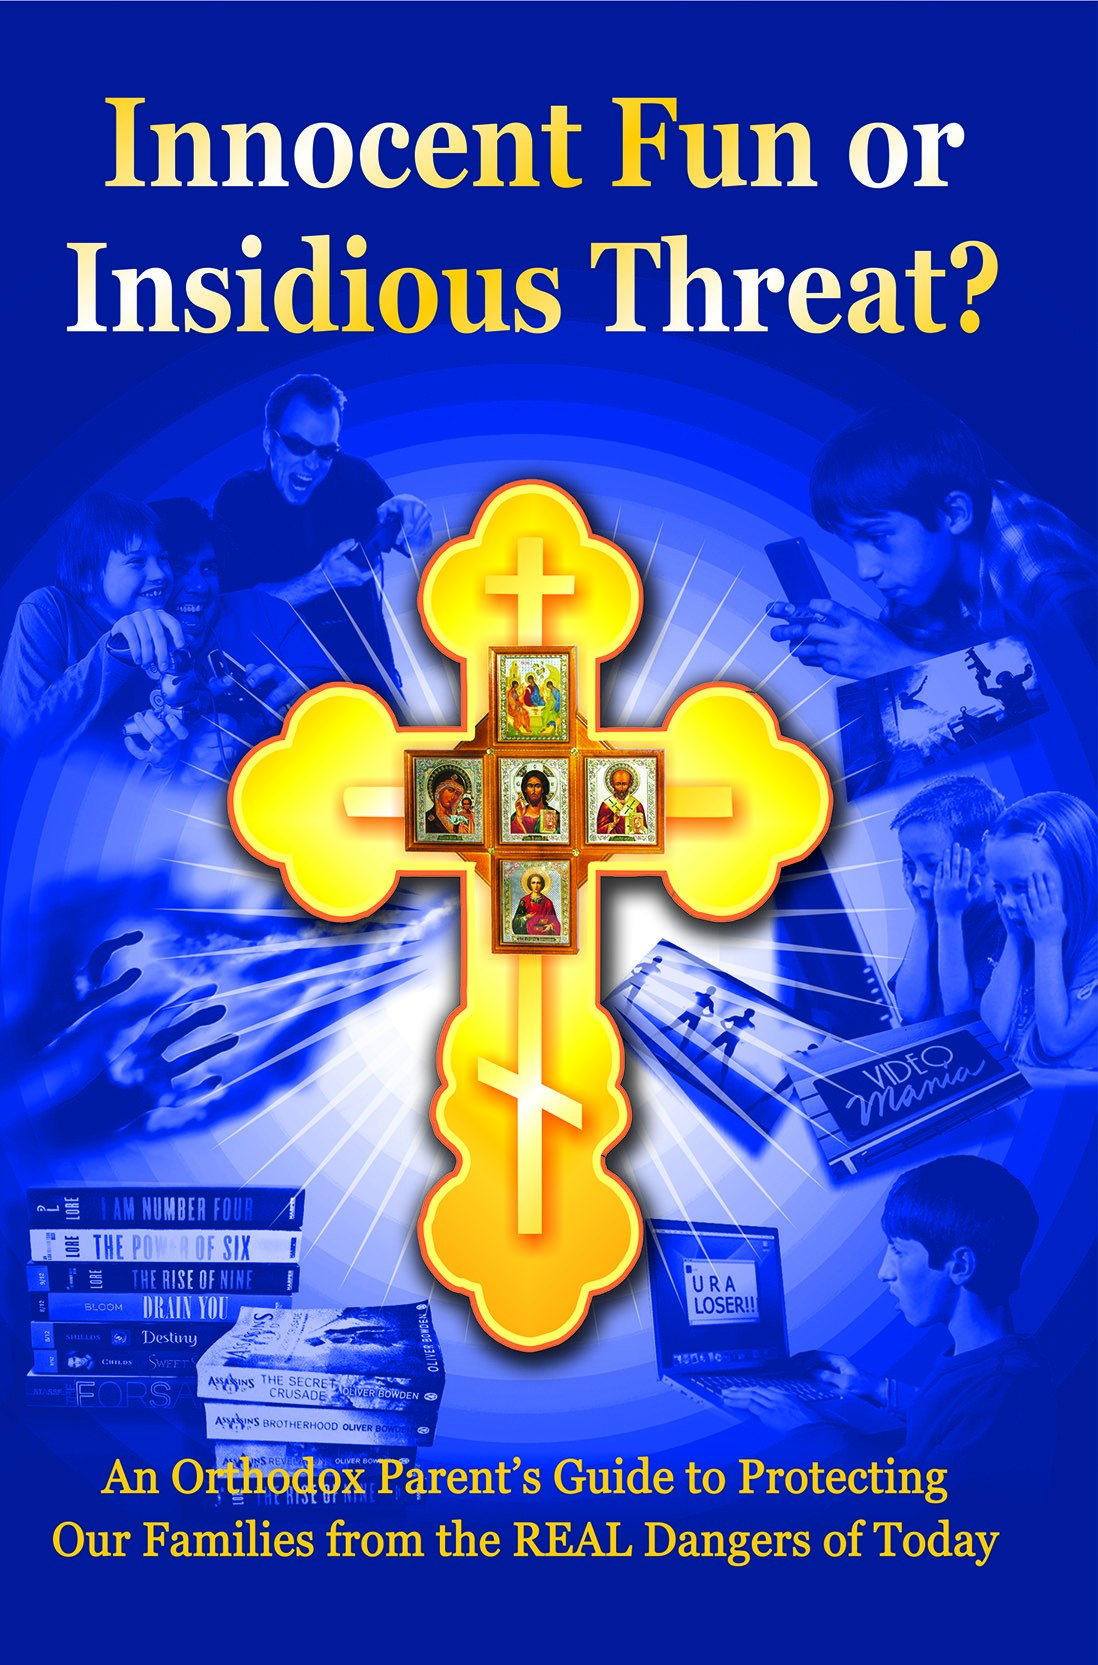 Innocent Fun or Insidious Threat?  An Orthodox Parent's Guide to Protecting Our Families from the REAL Dangers of Today